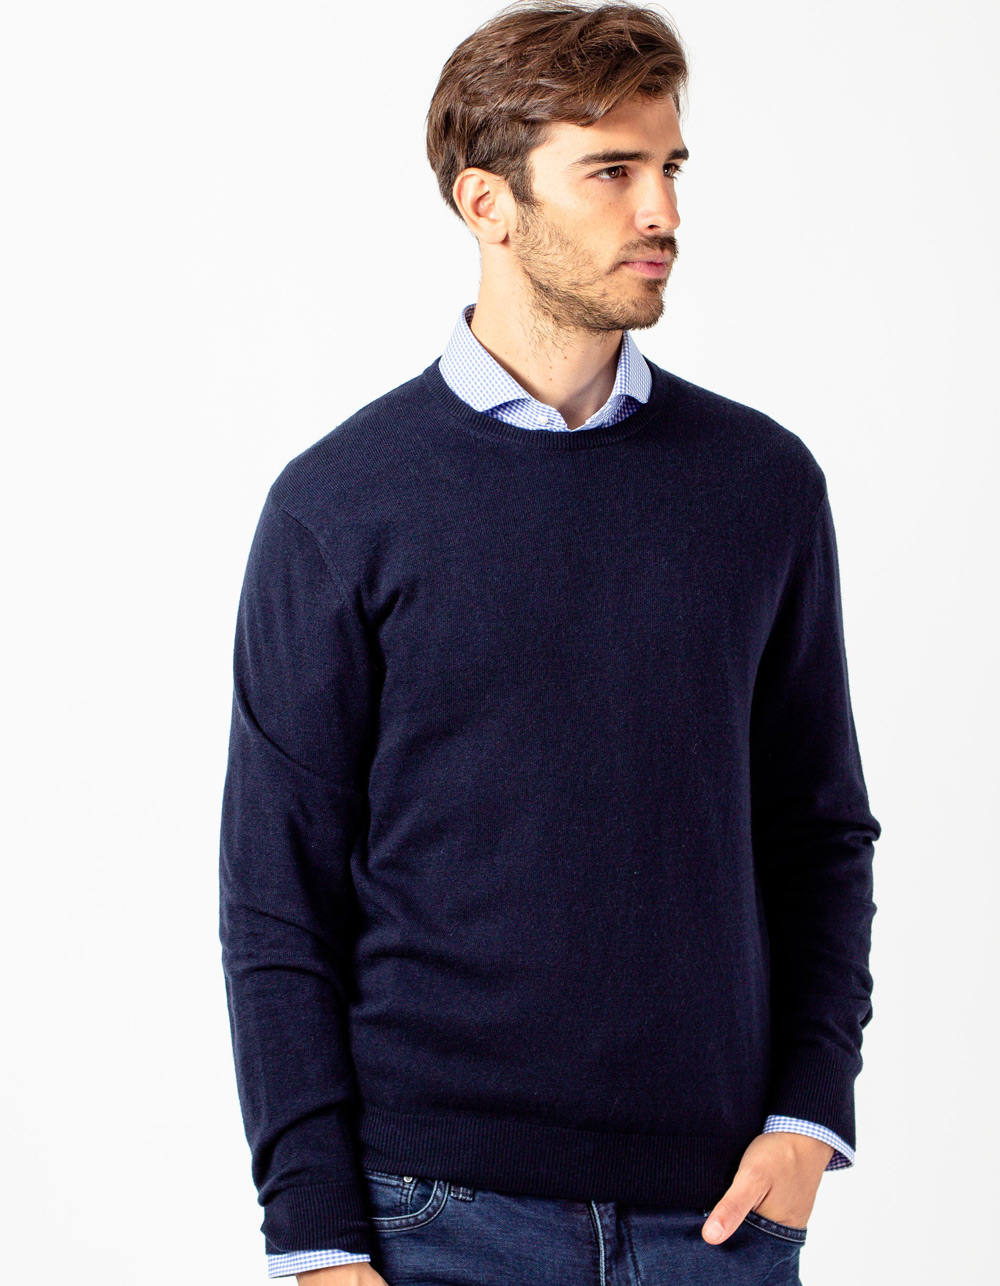 Navy blue crew neck sweater